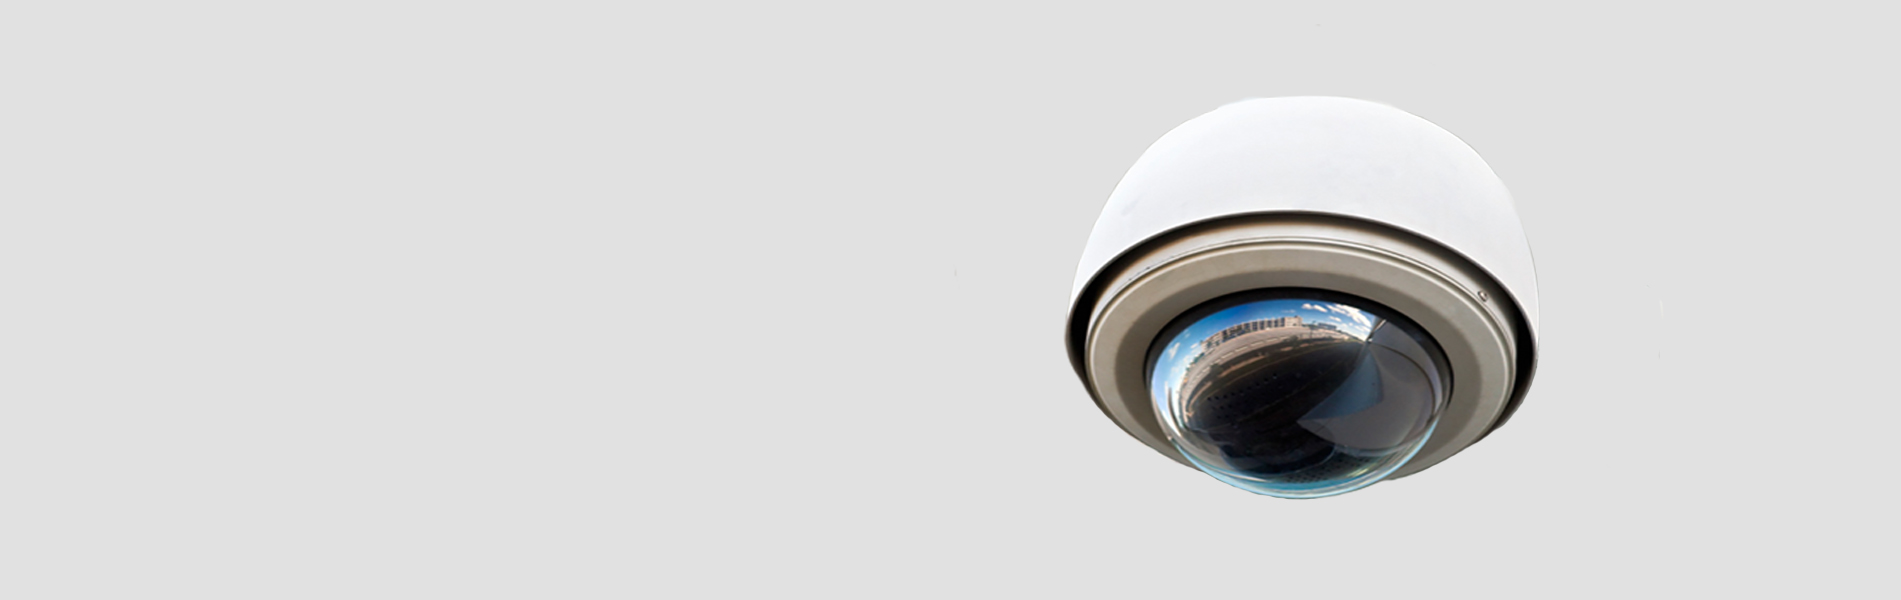 surveillance-camera-systems-nyc-tech-support